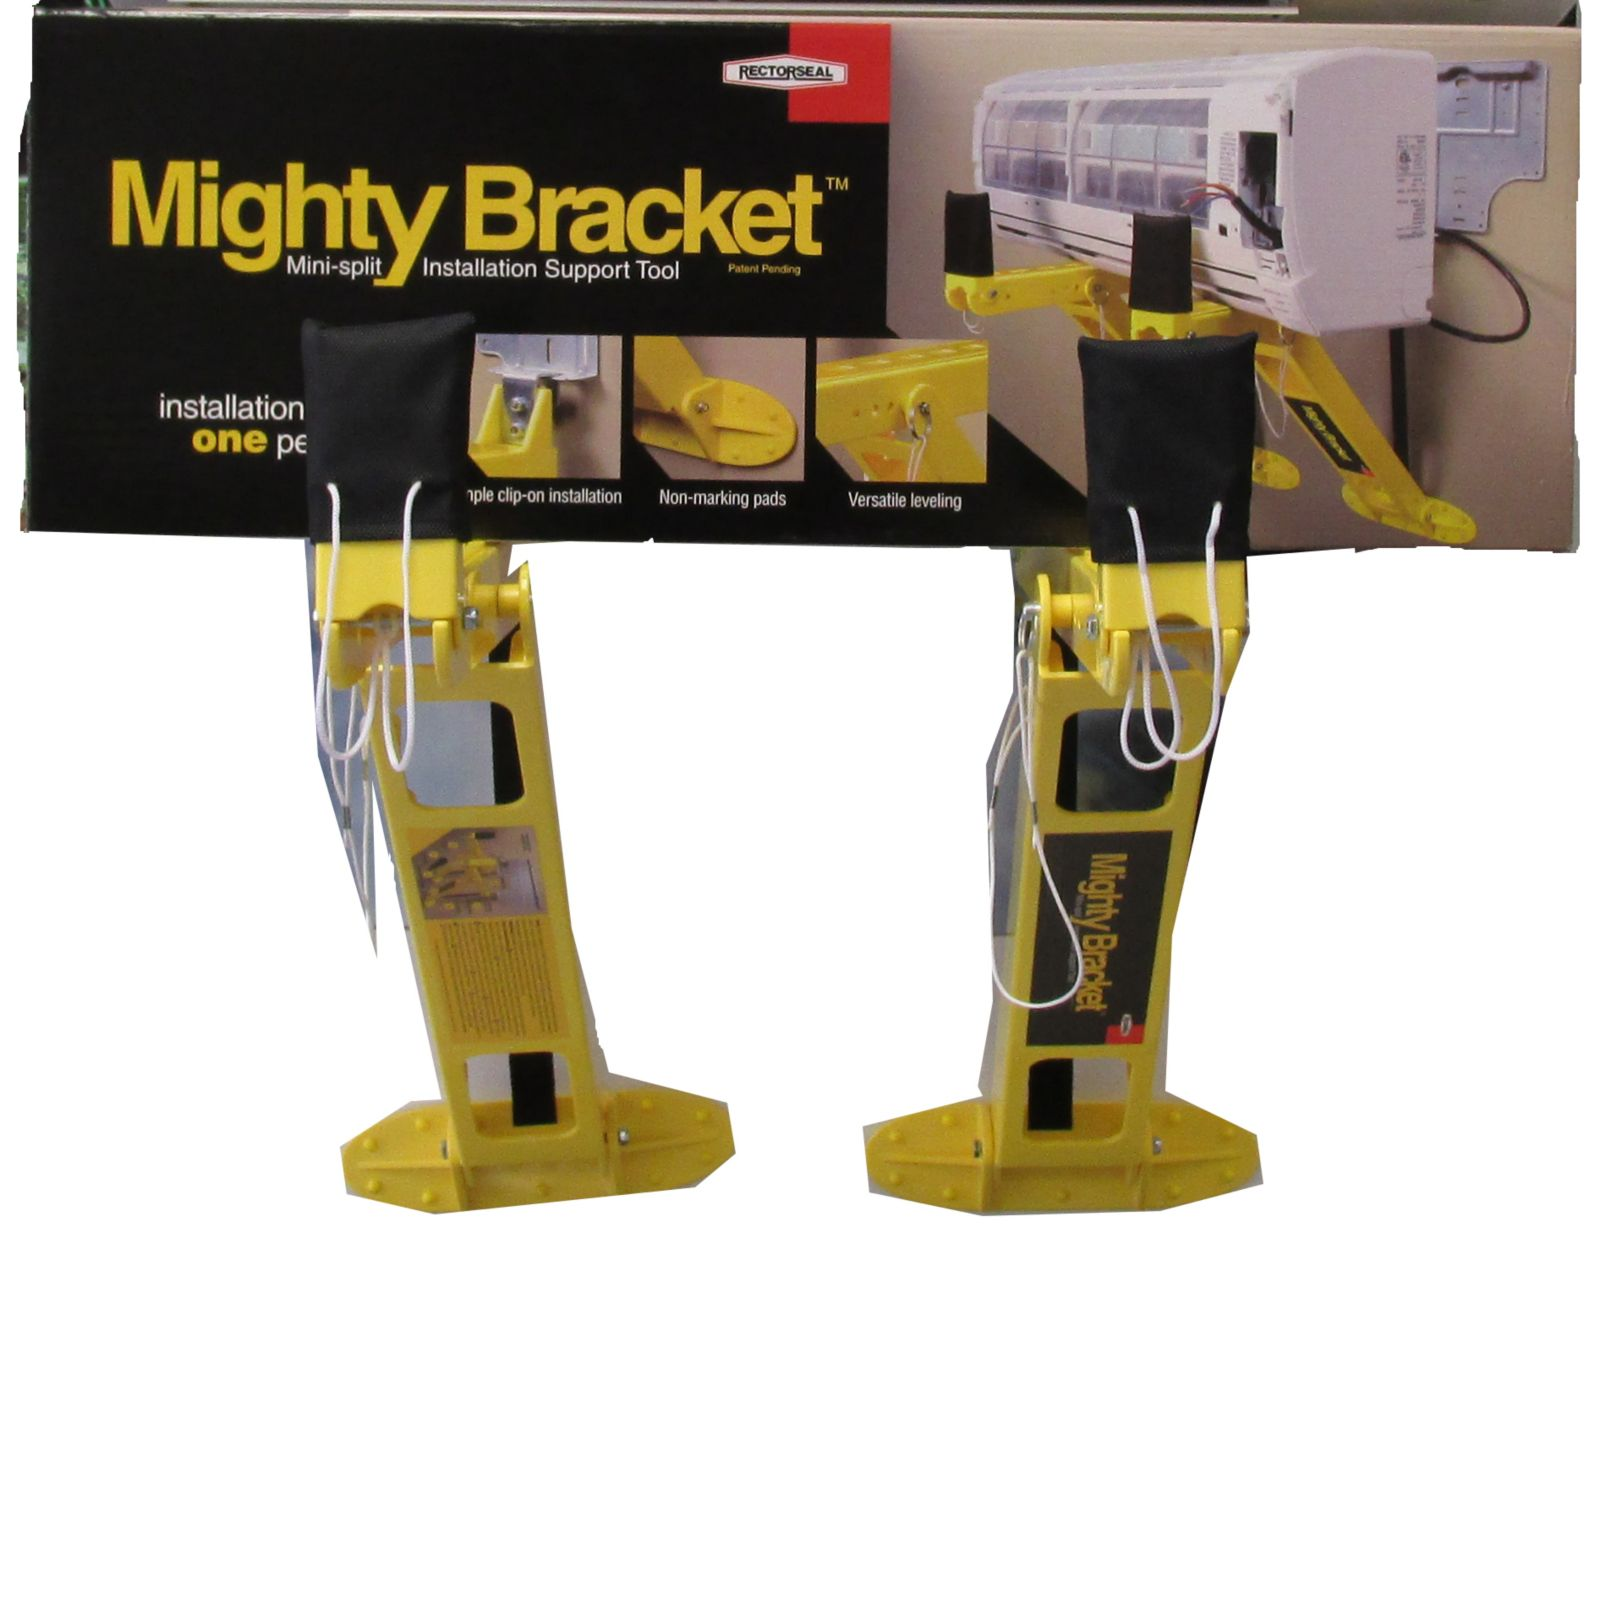 Rectorseal 97705 - Mighty Bracket Mini-Split Installation Support Tool